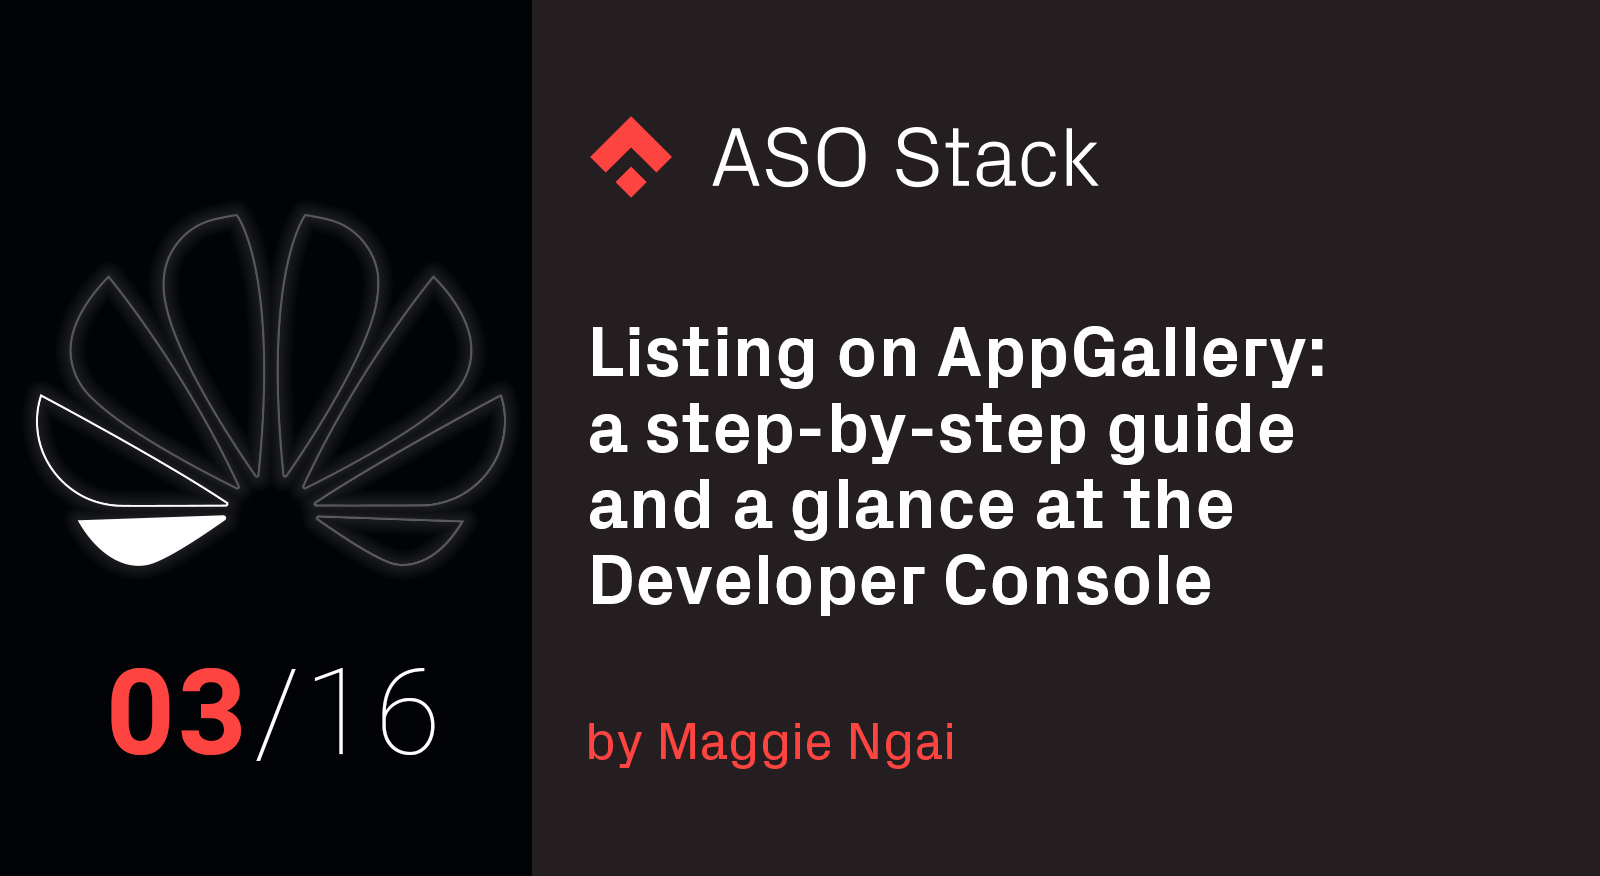 Listing on AppGallery- A step-by-step guide and a glance at the Developer Console